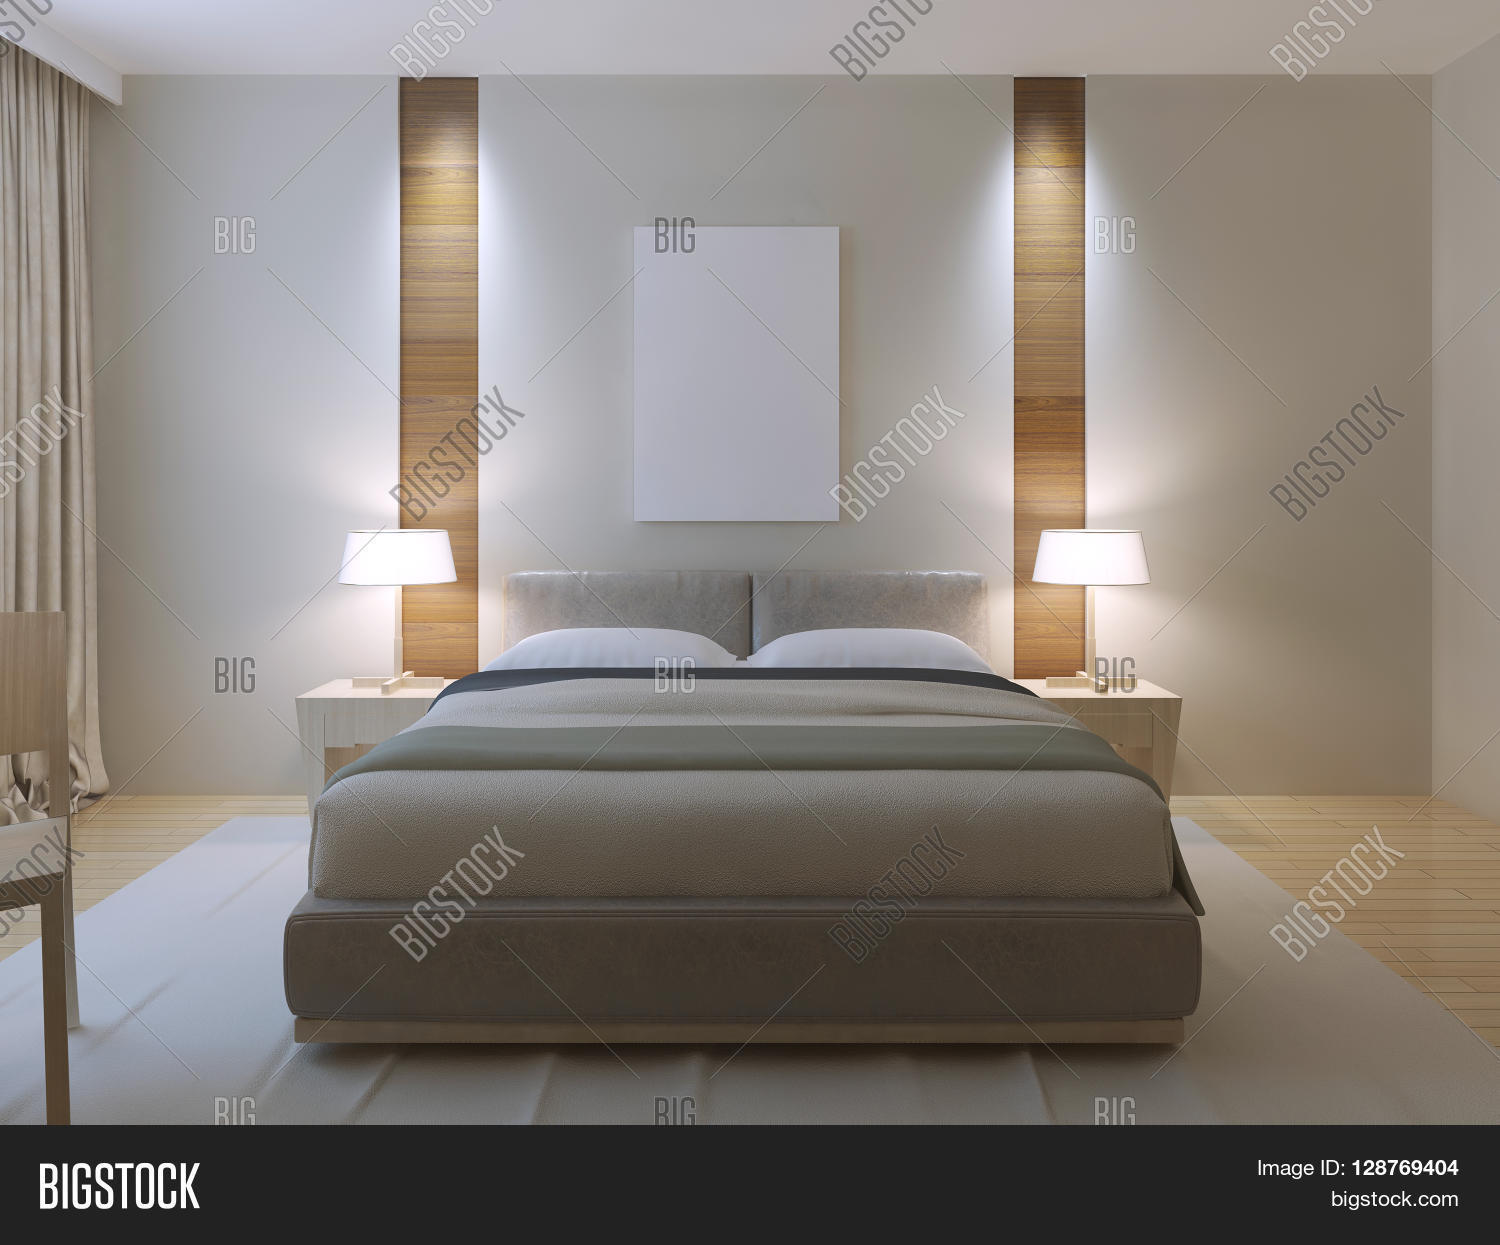 Modern master bedroom design image photo bigstock for Bedroom designs with attached bathroom and dressing room